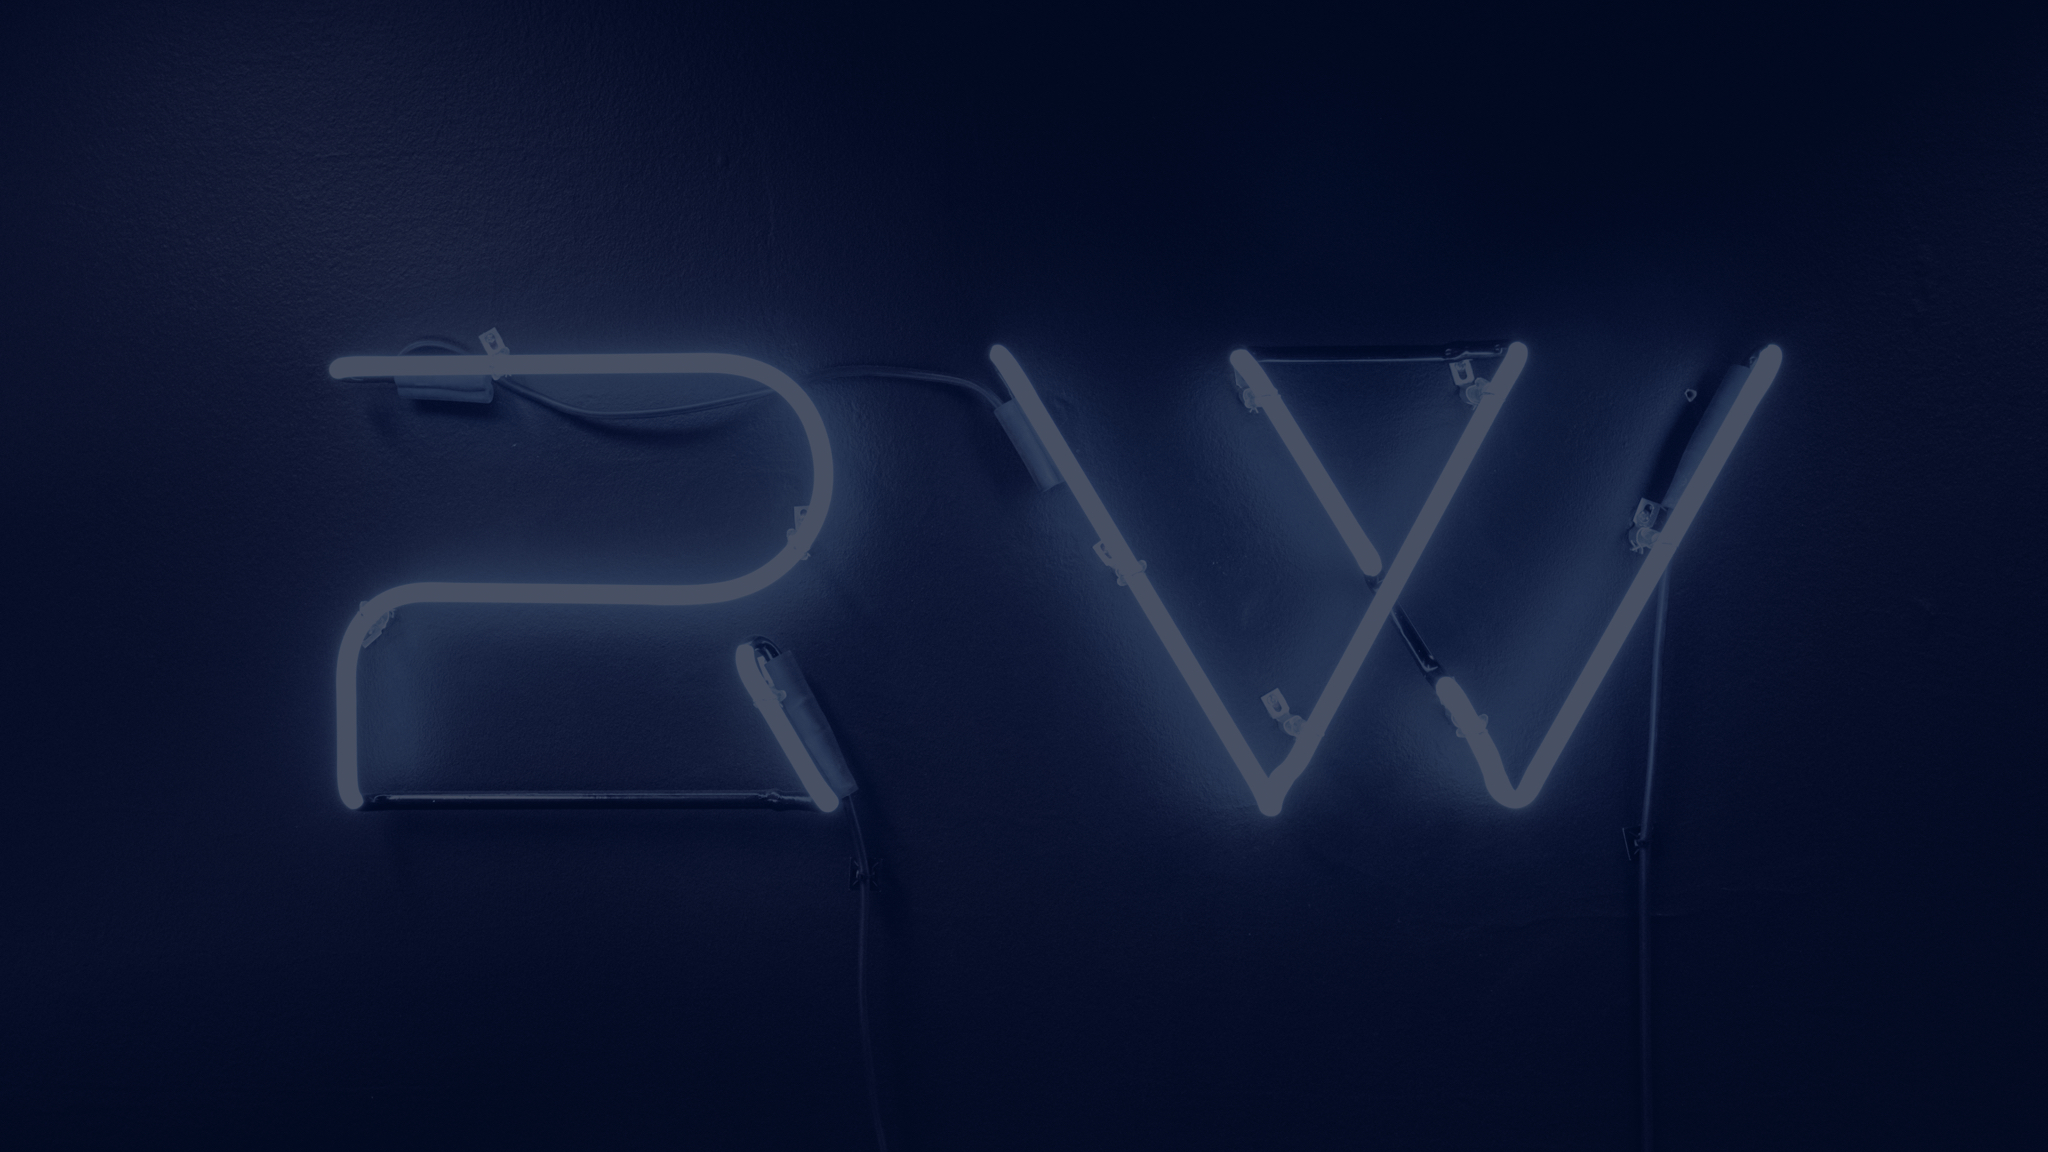 Rocket Wagon neon logo